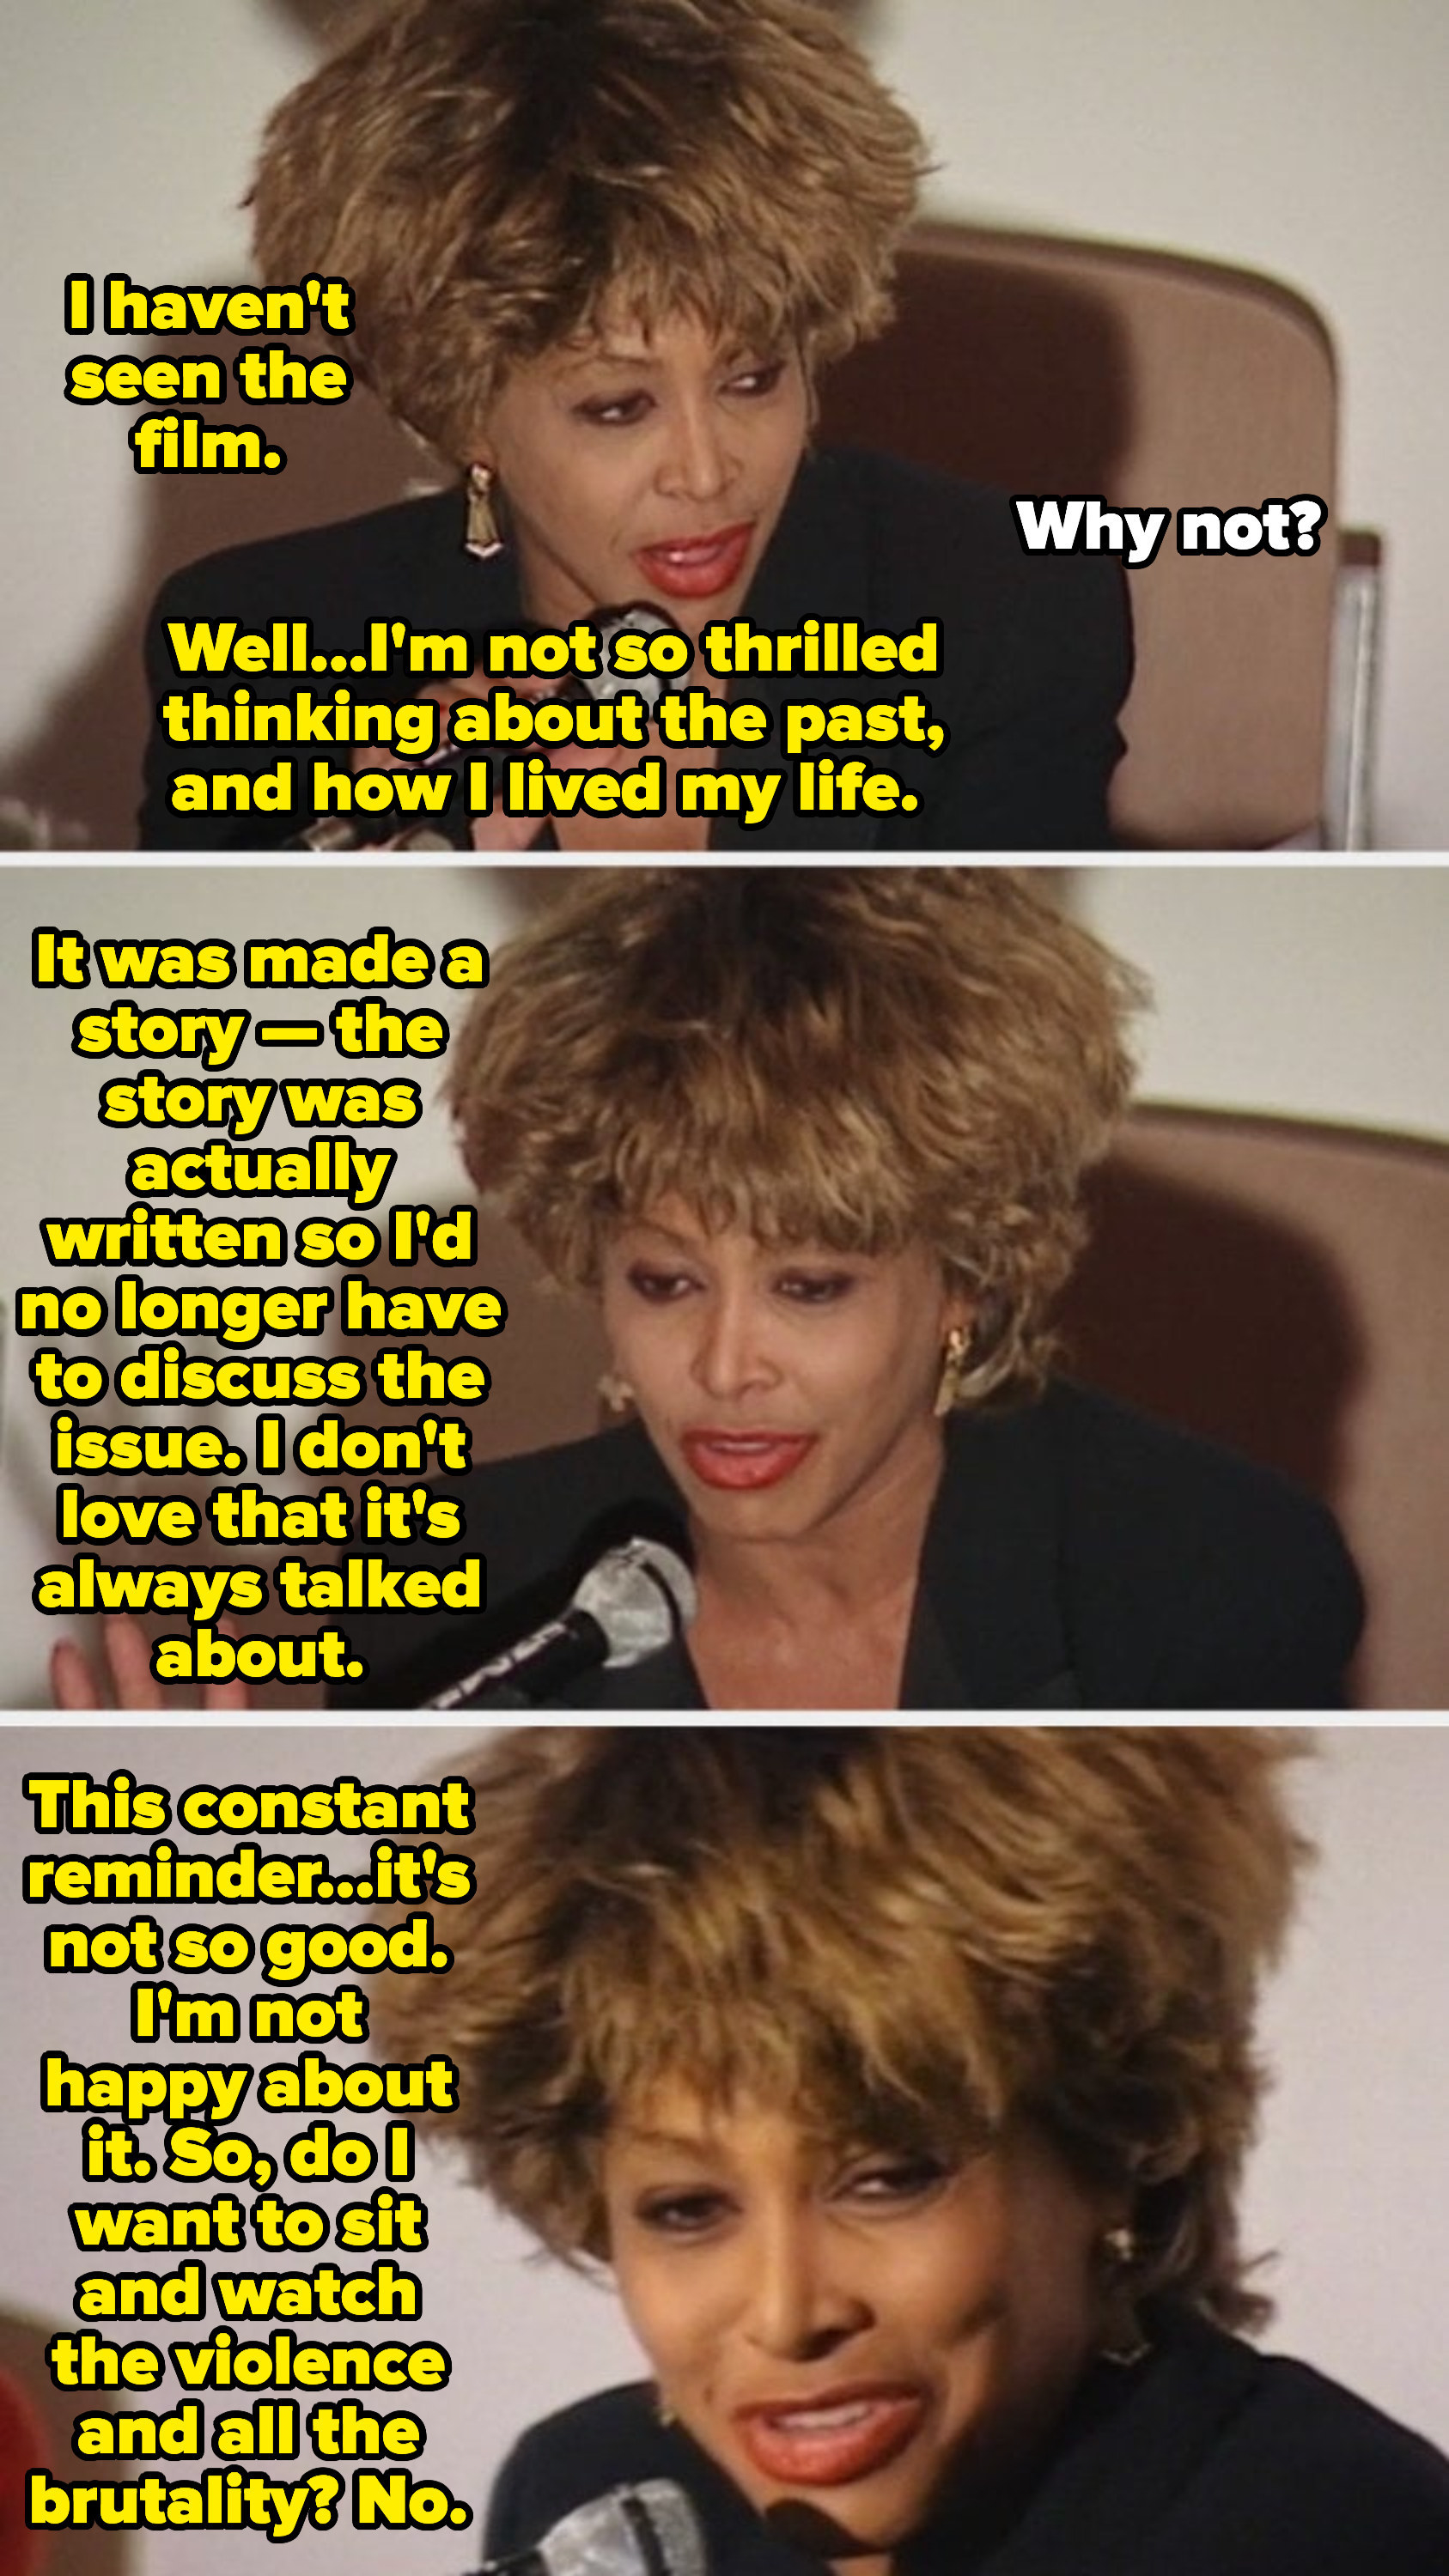 """Tina Turner at a press conference explaining why she's never seen """"What's Love Got to Do with It,"""" saying: """"Do I want to sit and watch the violence and all of the brutality? No"""""""